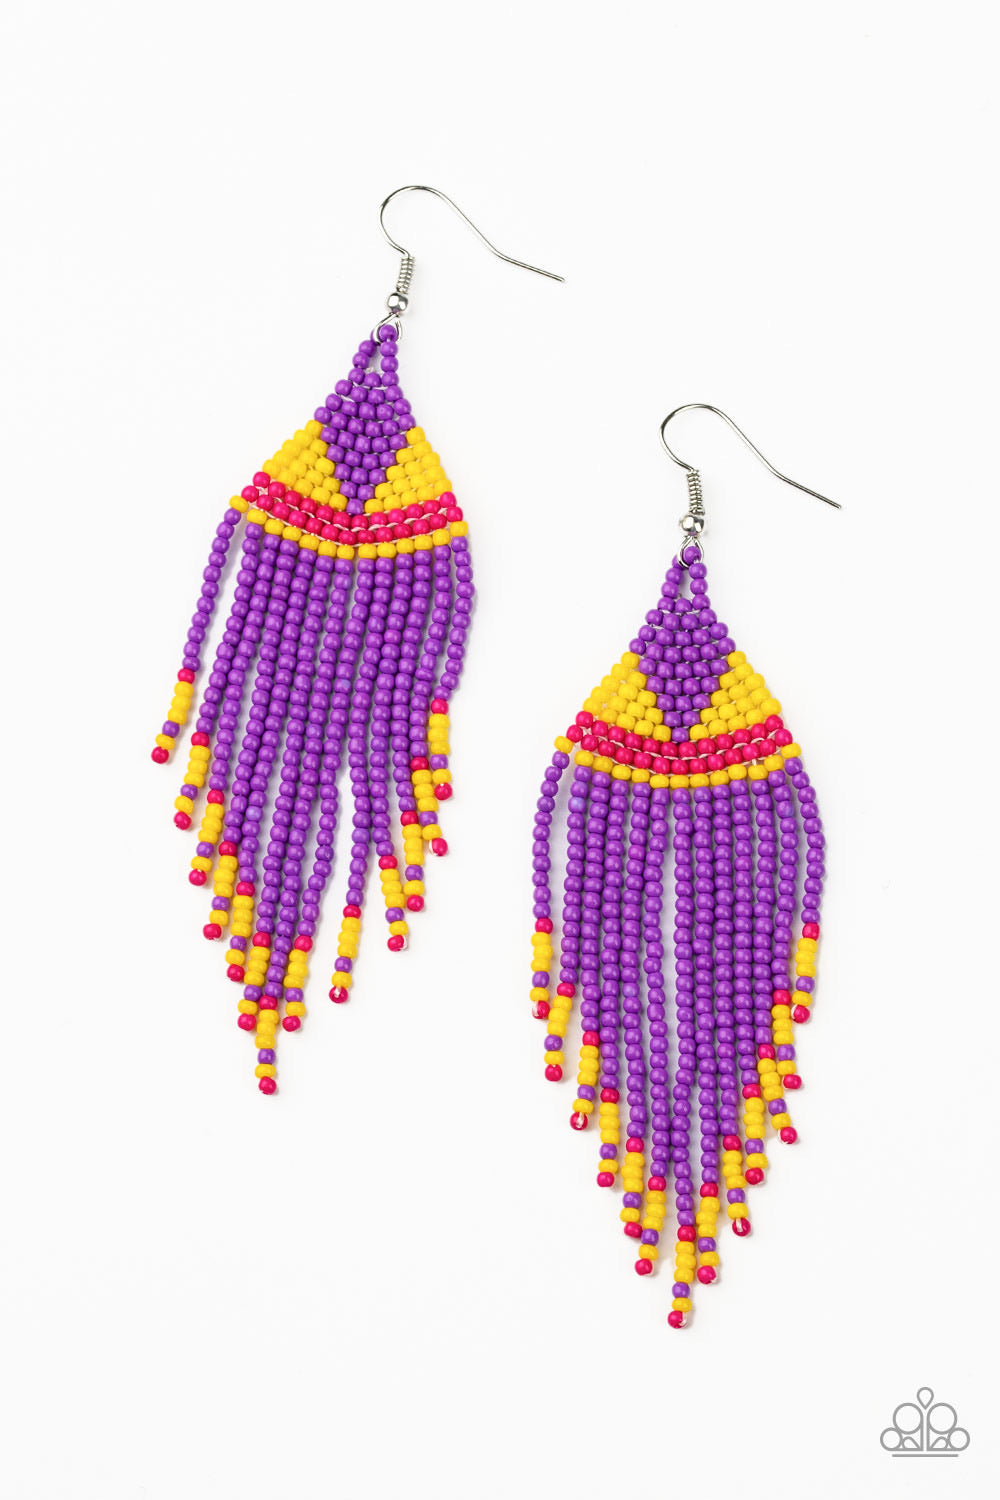 BEADazzle Me - Purple Seed Bead Earrings - Paparazzi Accessories